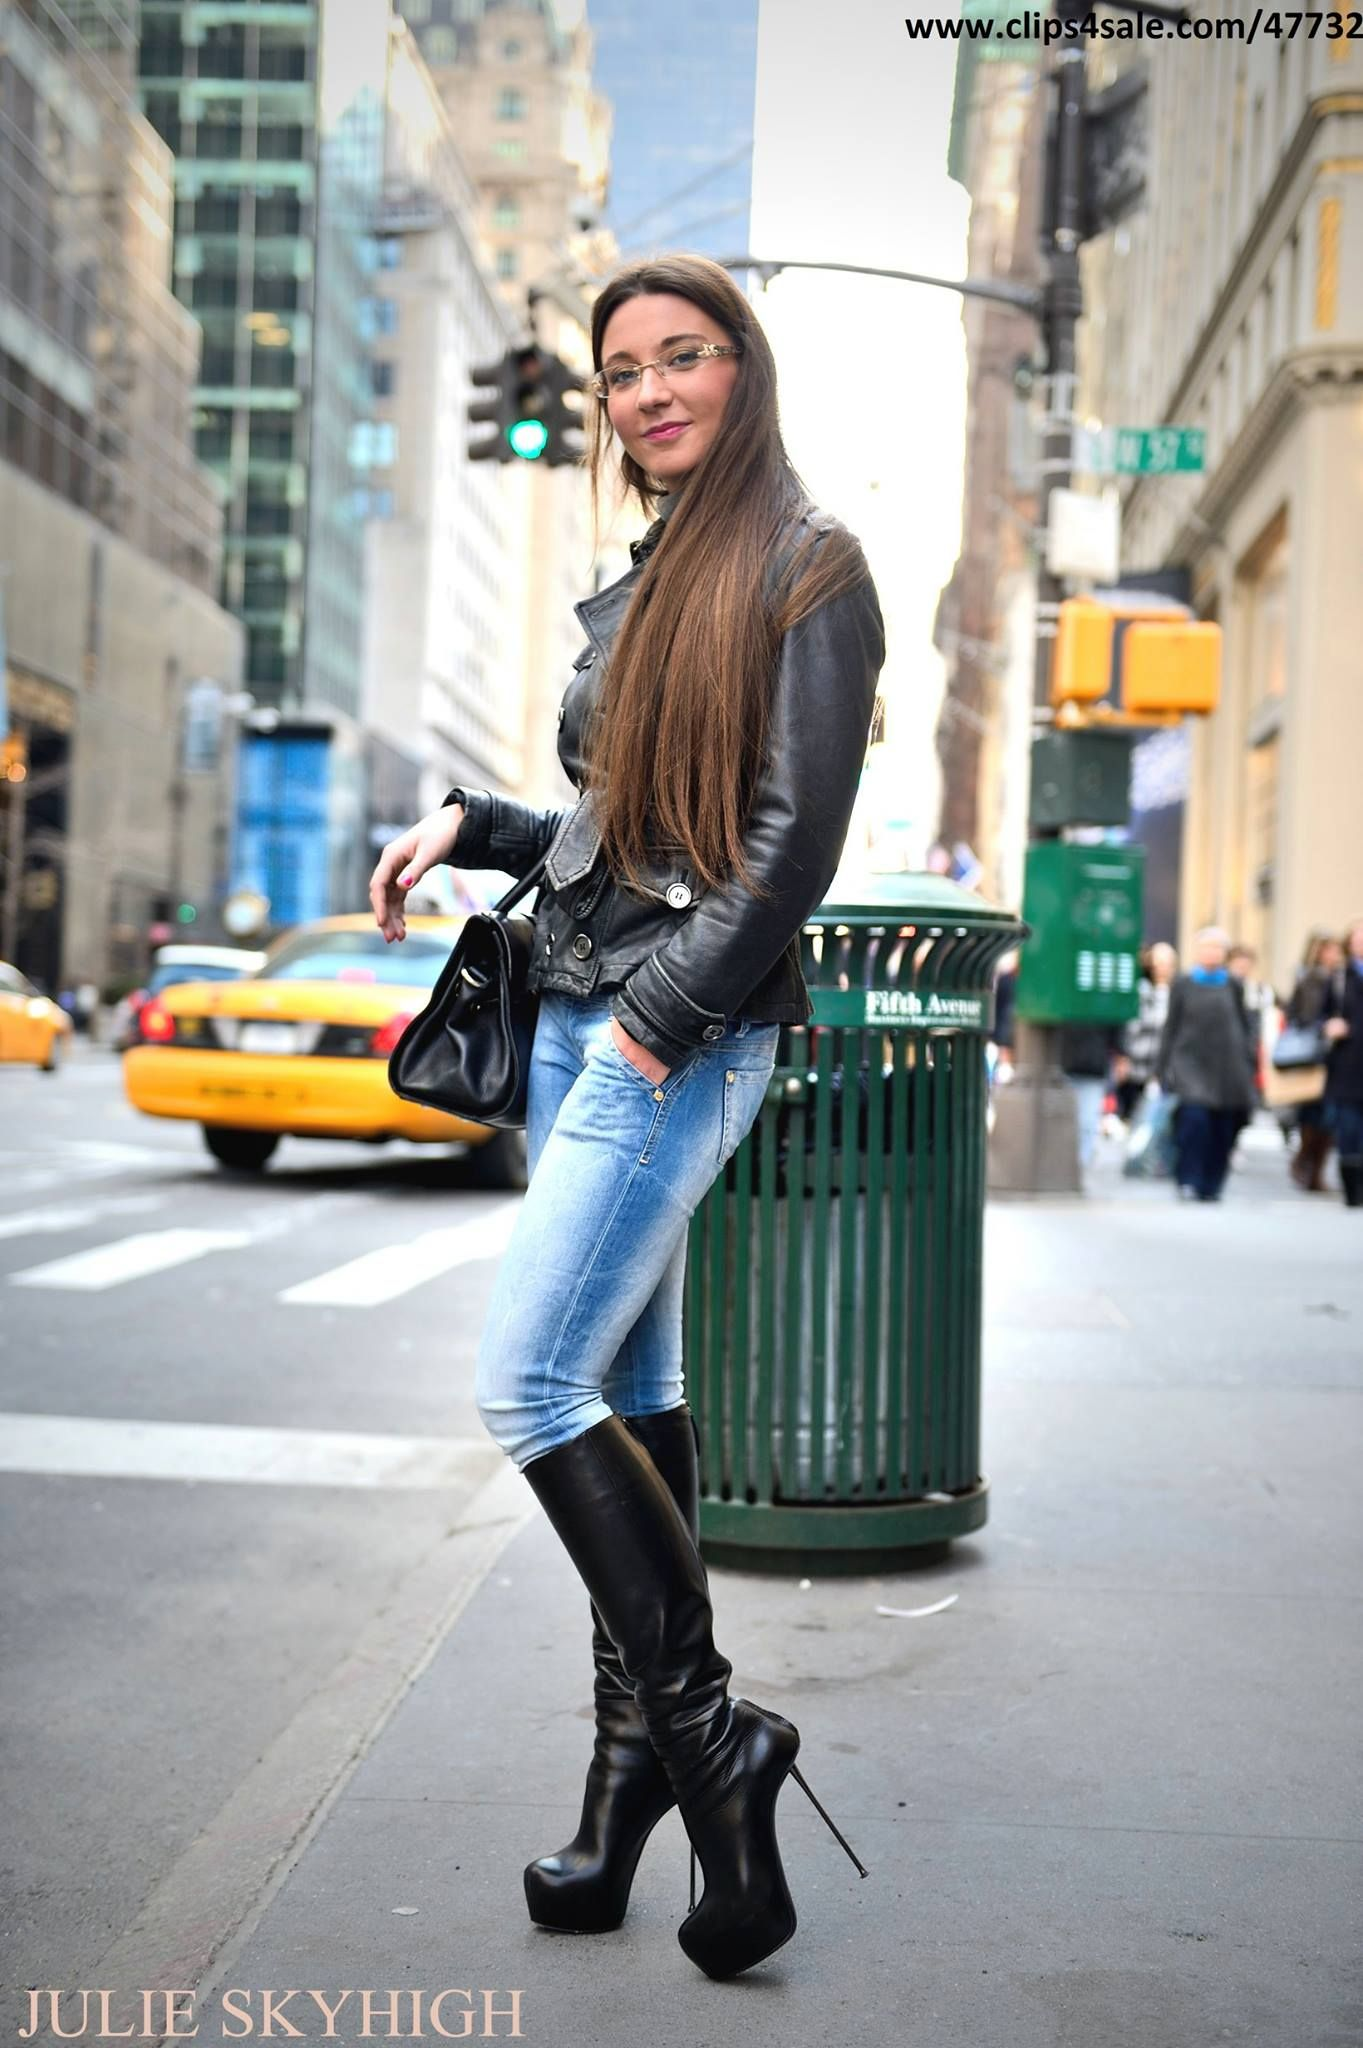 e9a0aefebba Julie Skyhigh stiletto boots in NYC